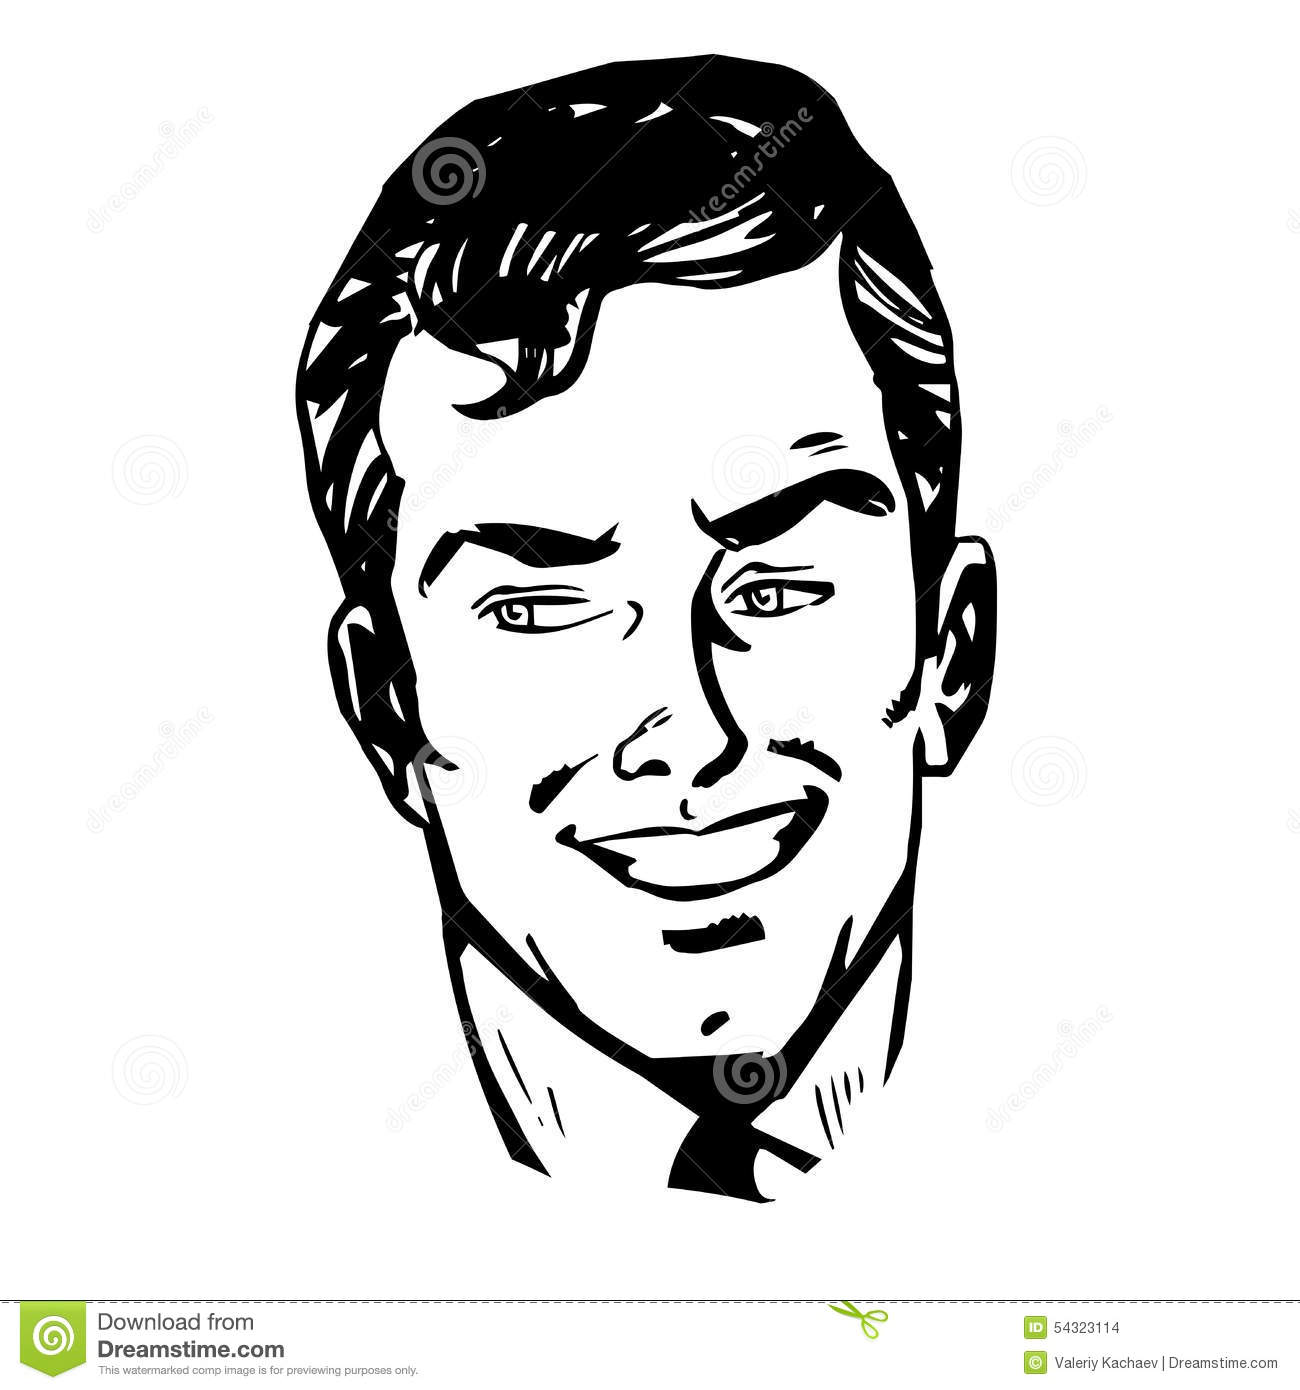 Man S Face Line Drawing : Smiling man face retro line art stock illustration image